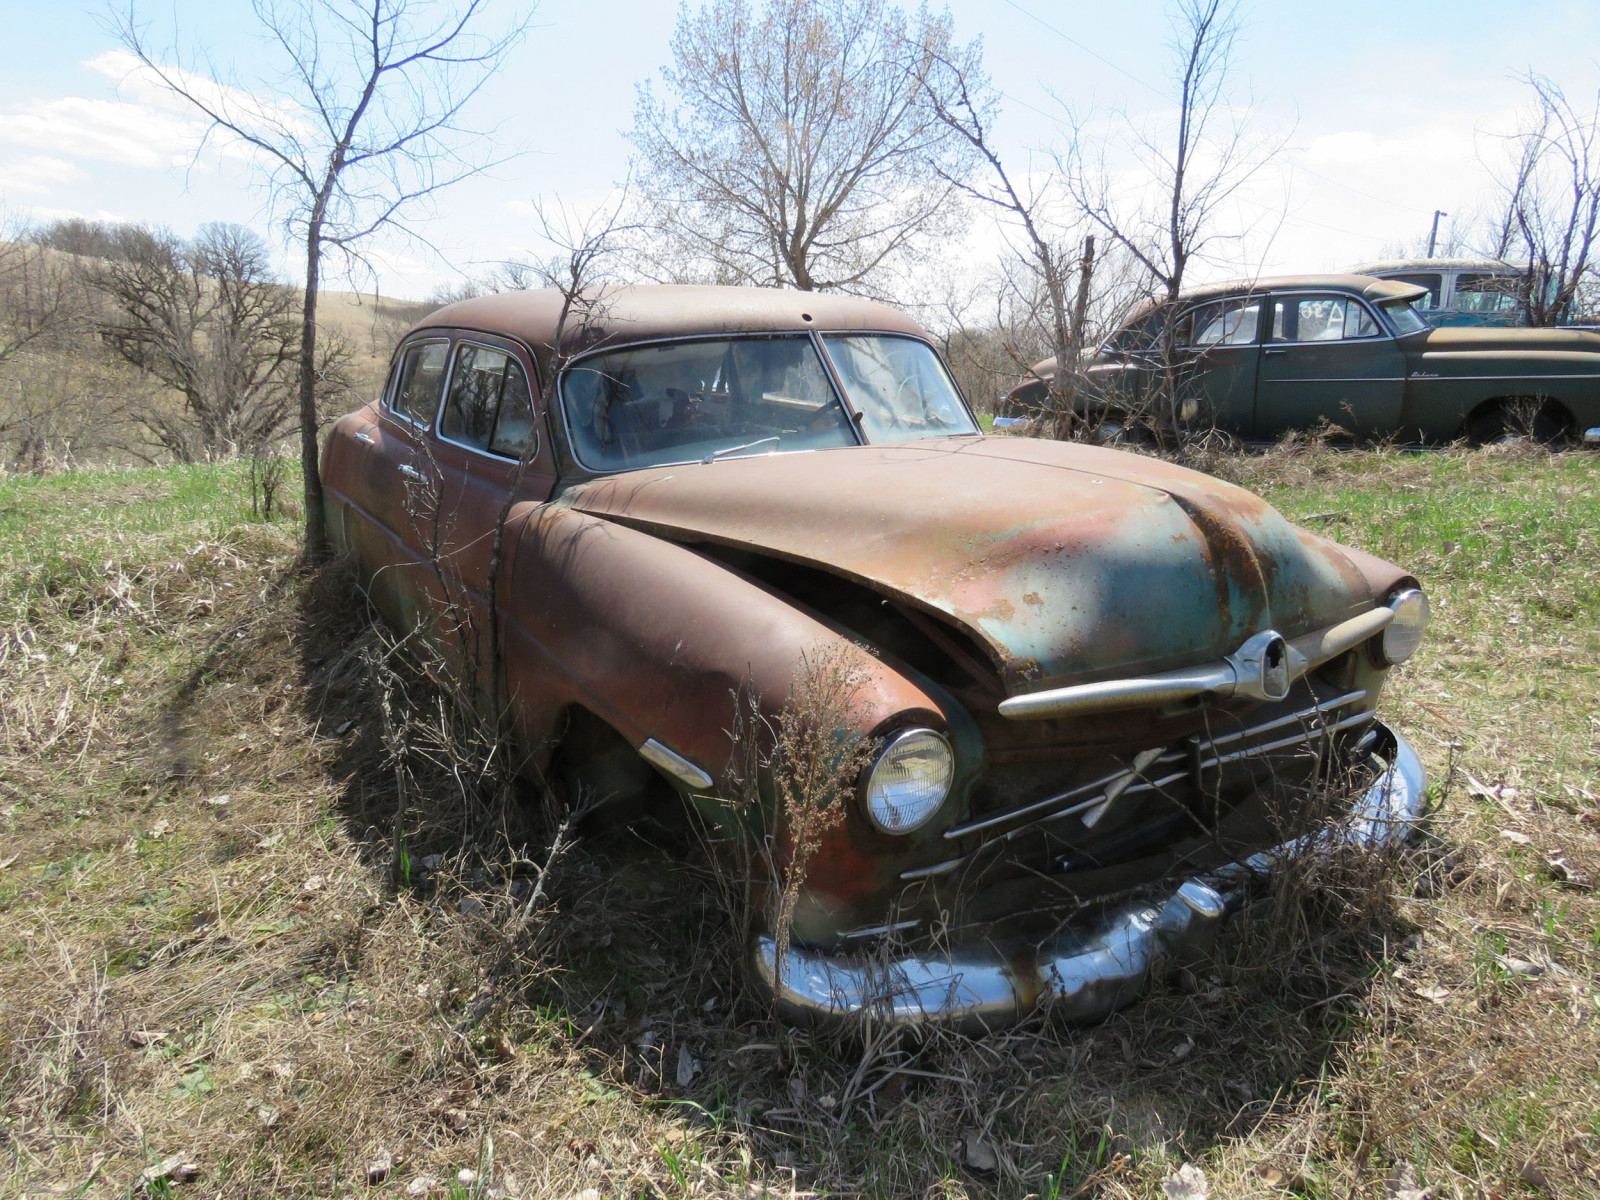 1949/50 Hudson 4dr Sedan for Project or Parts - Image 2